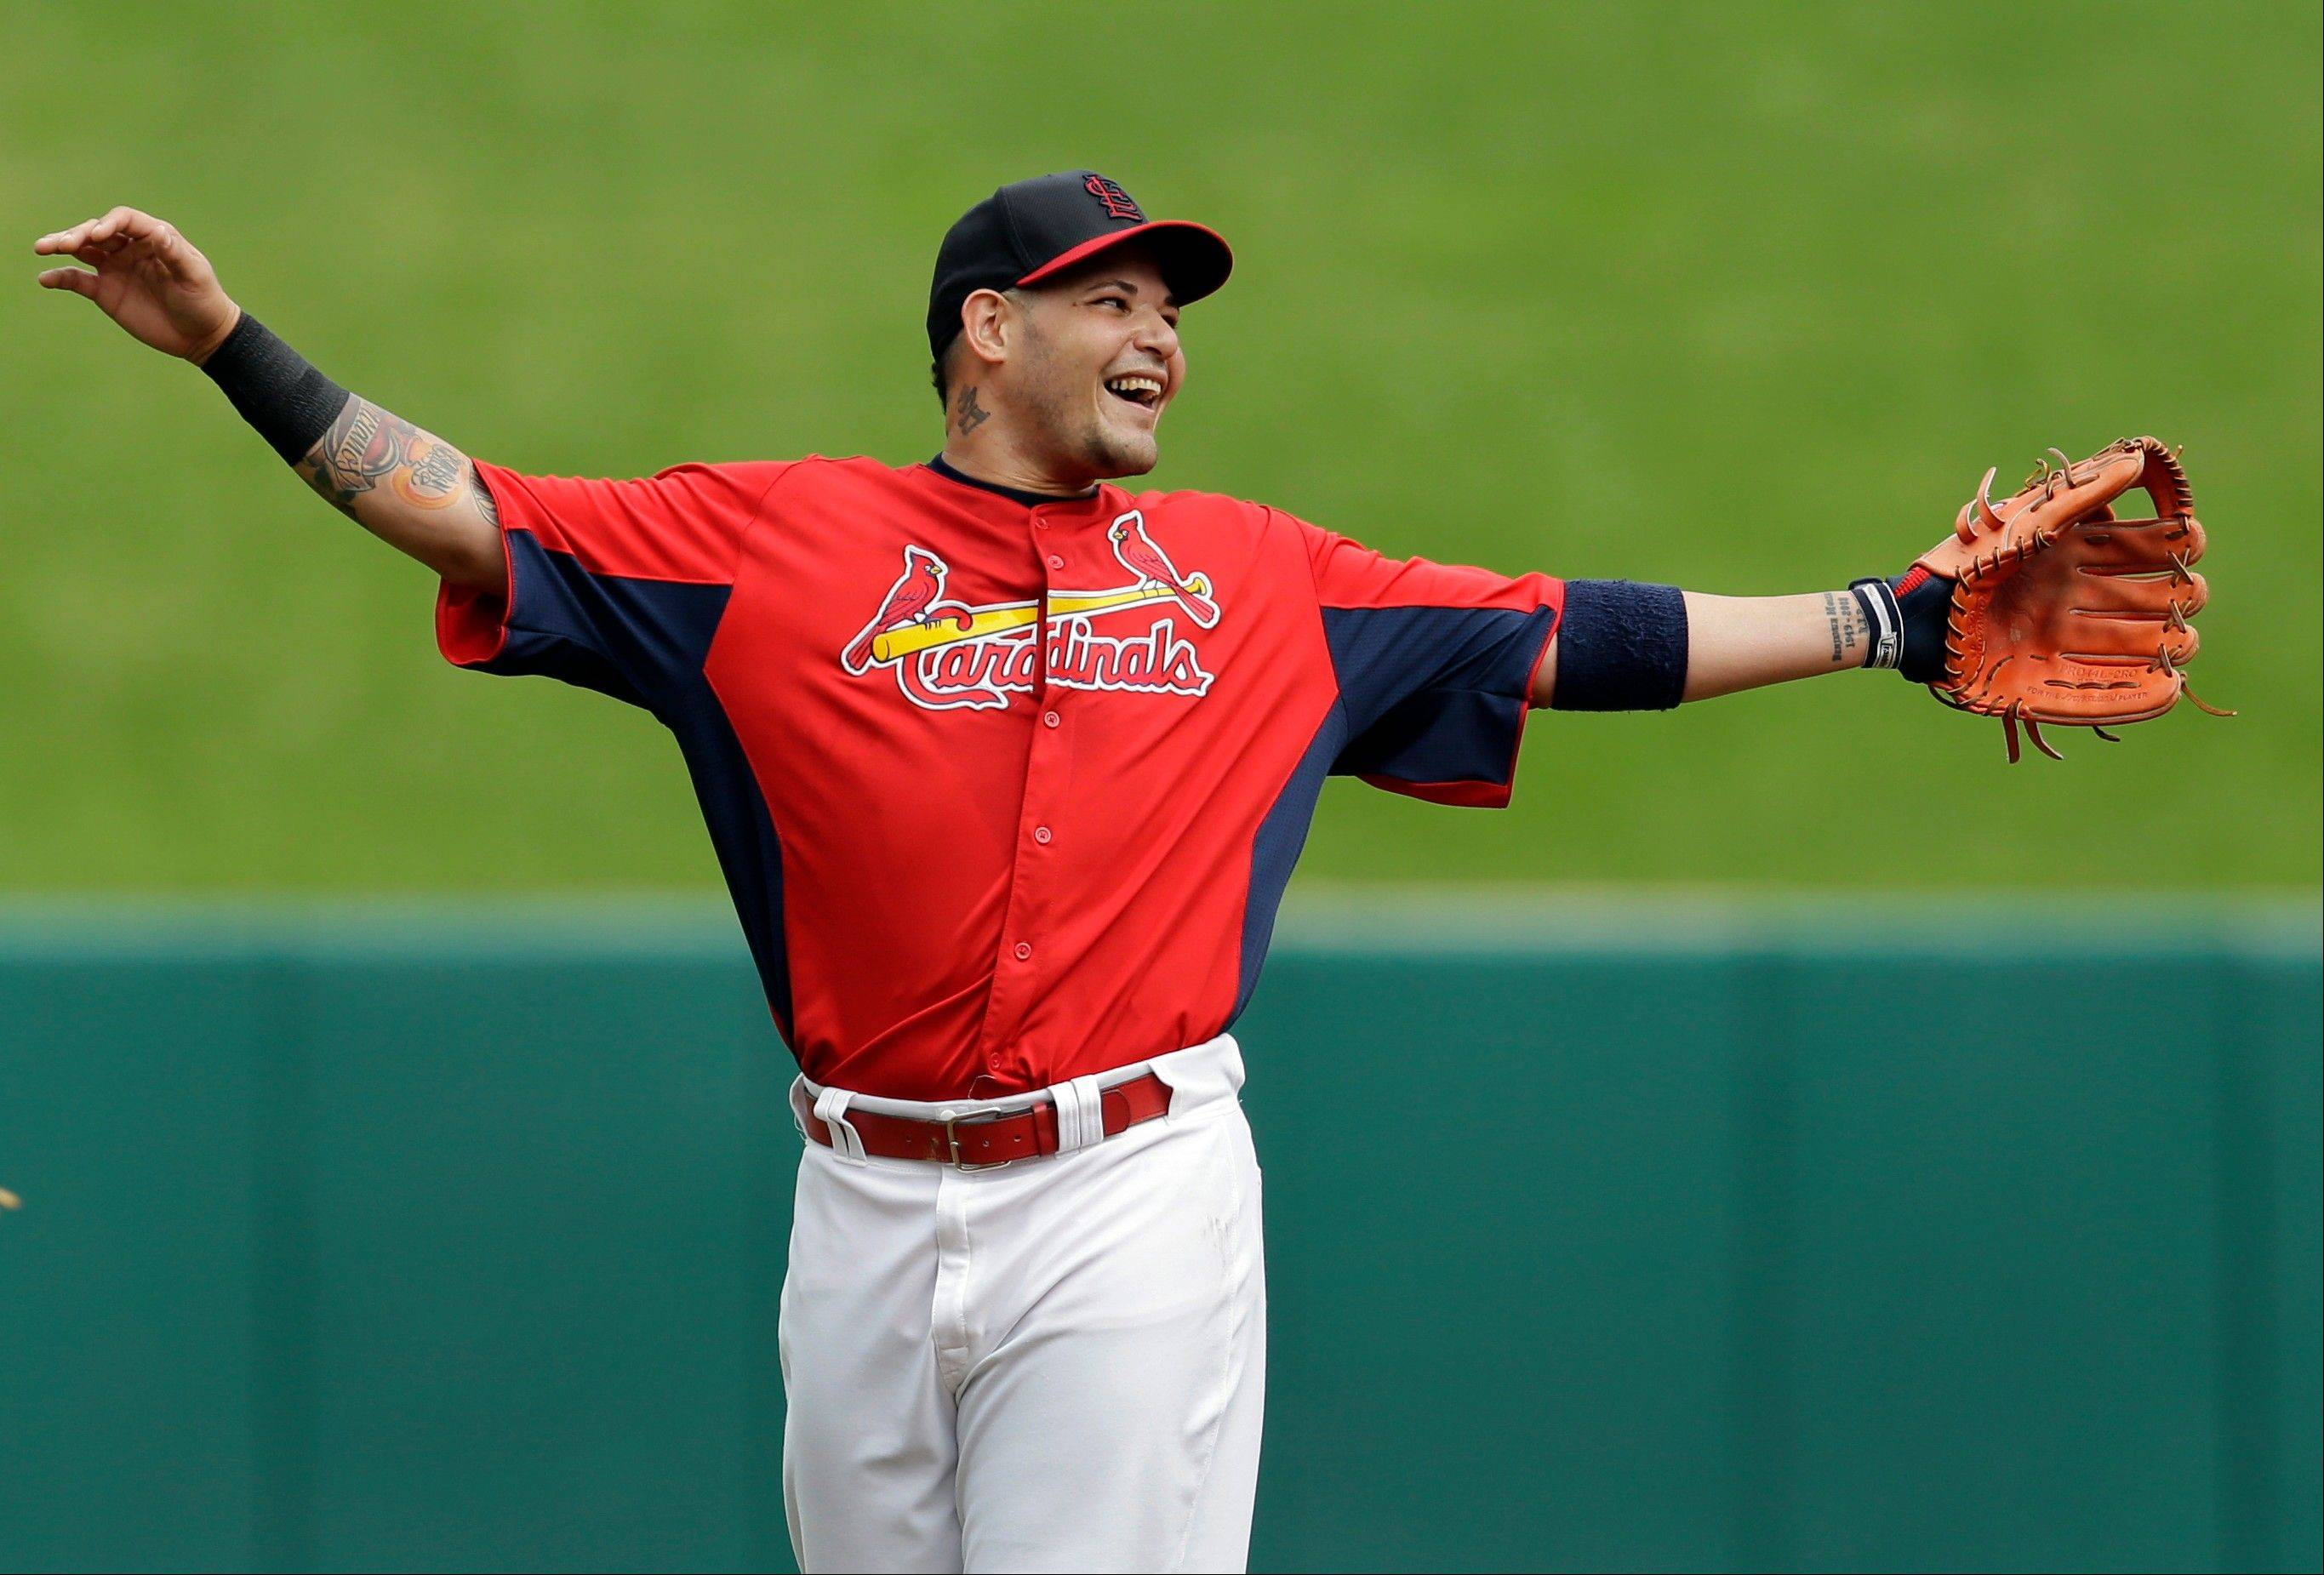 St. Louis Cardinals catcher Yadier Molina laughs during baseball practice Tuesday in St. Louis. The Cardinals are set to host Game 1 of the NL division series on Thursday, gainst the winner of Tuesday�s wild-card game between the Cincinnati Reds and Pittsburgh Pirates.